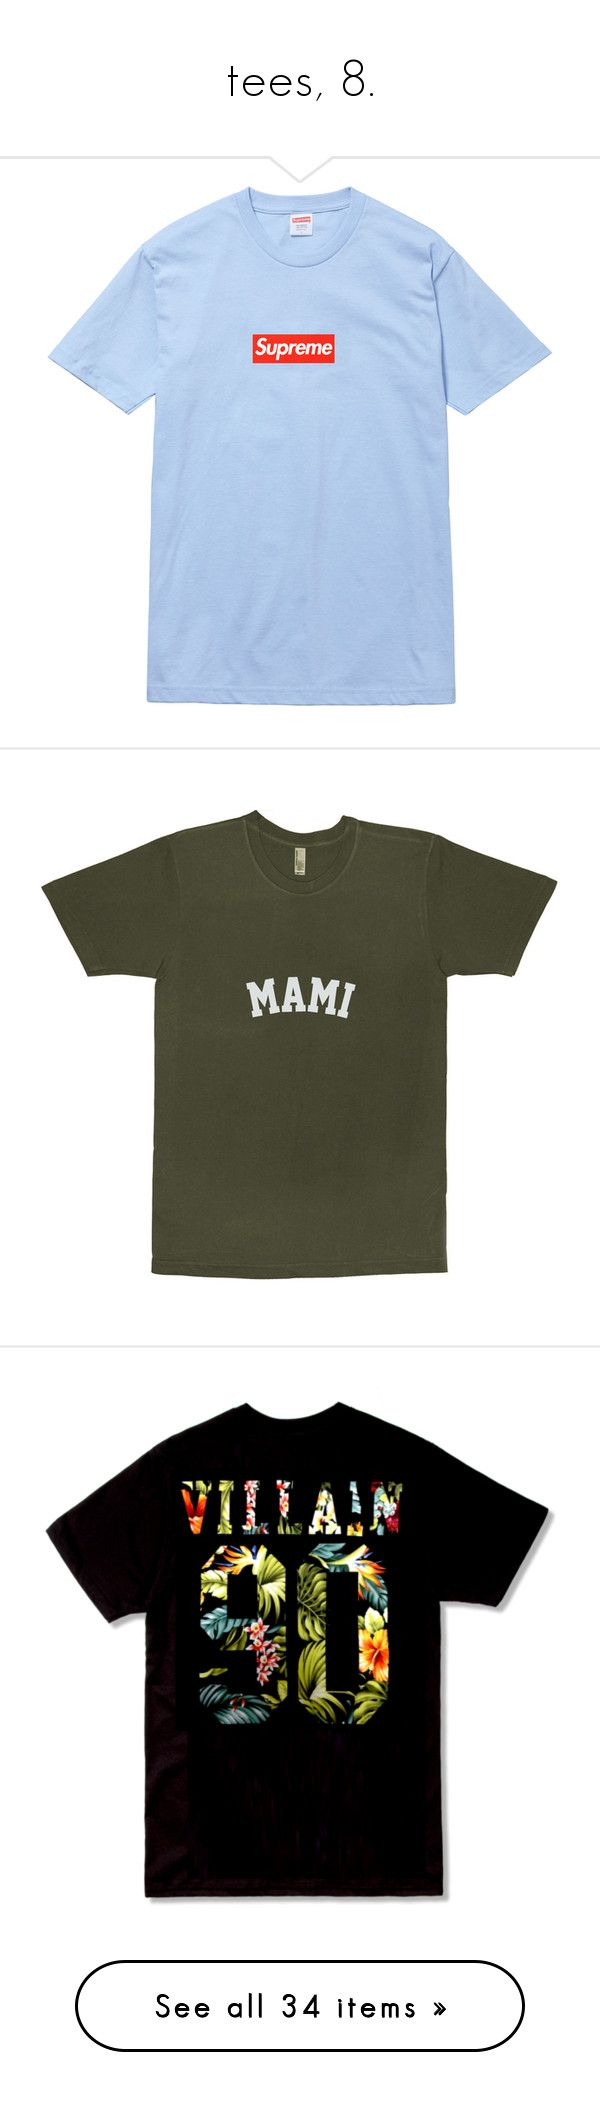 Create your own designs amp sell your design online shirts zazzle - Best 10 Supreme T Shirt Ideas On Pinterest Supreme Clothing Supreme Shirt And Travis Scott Shirt